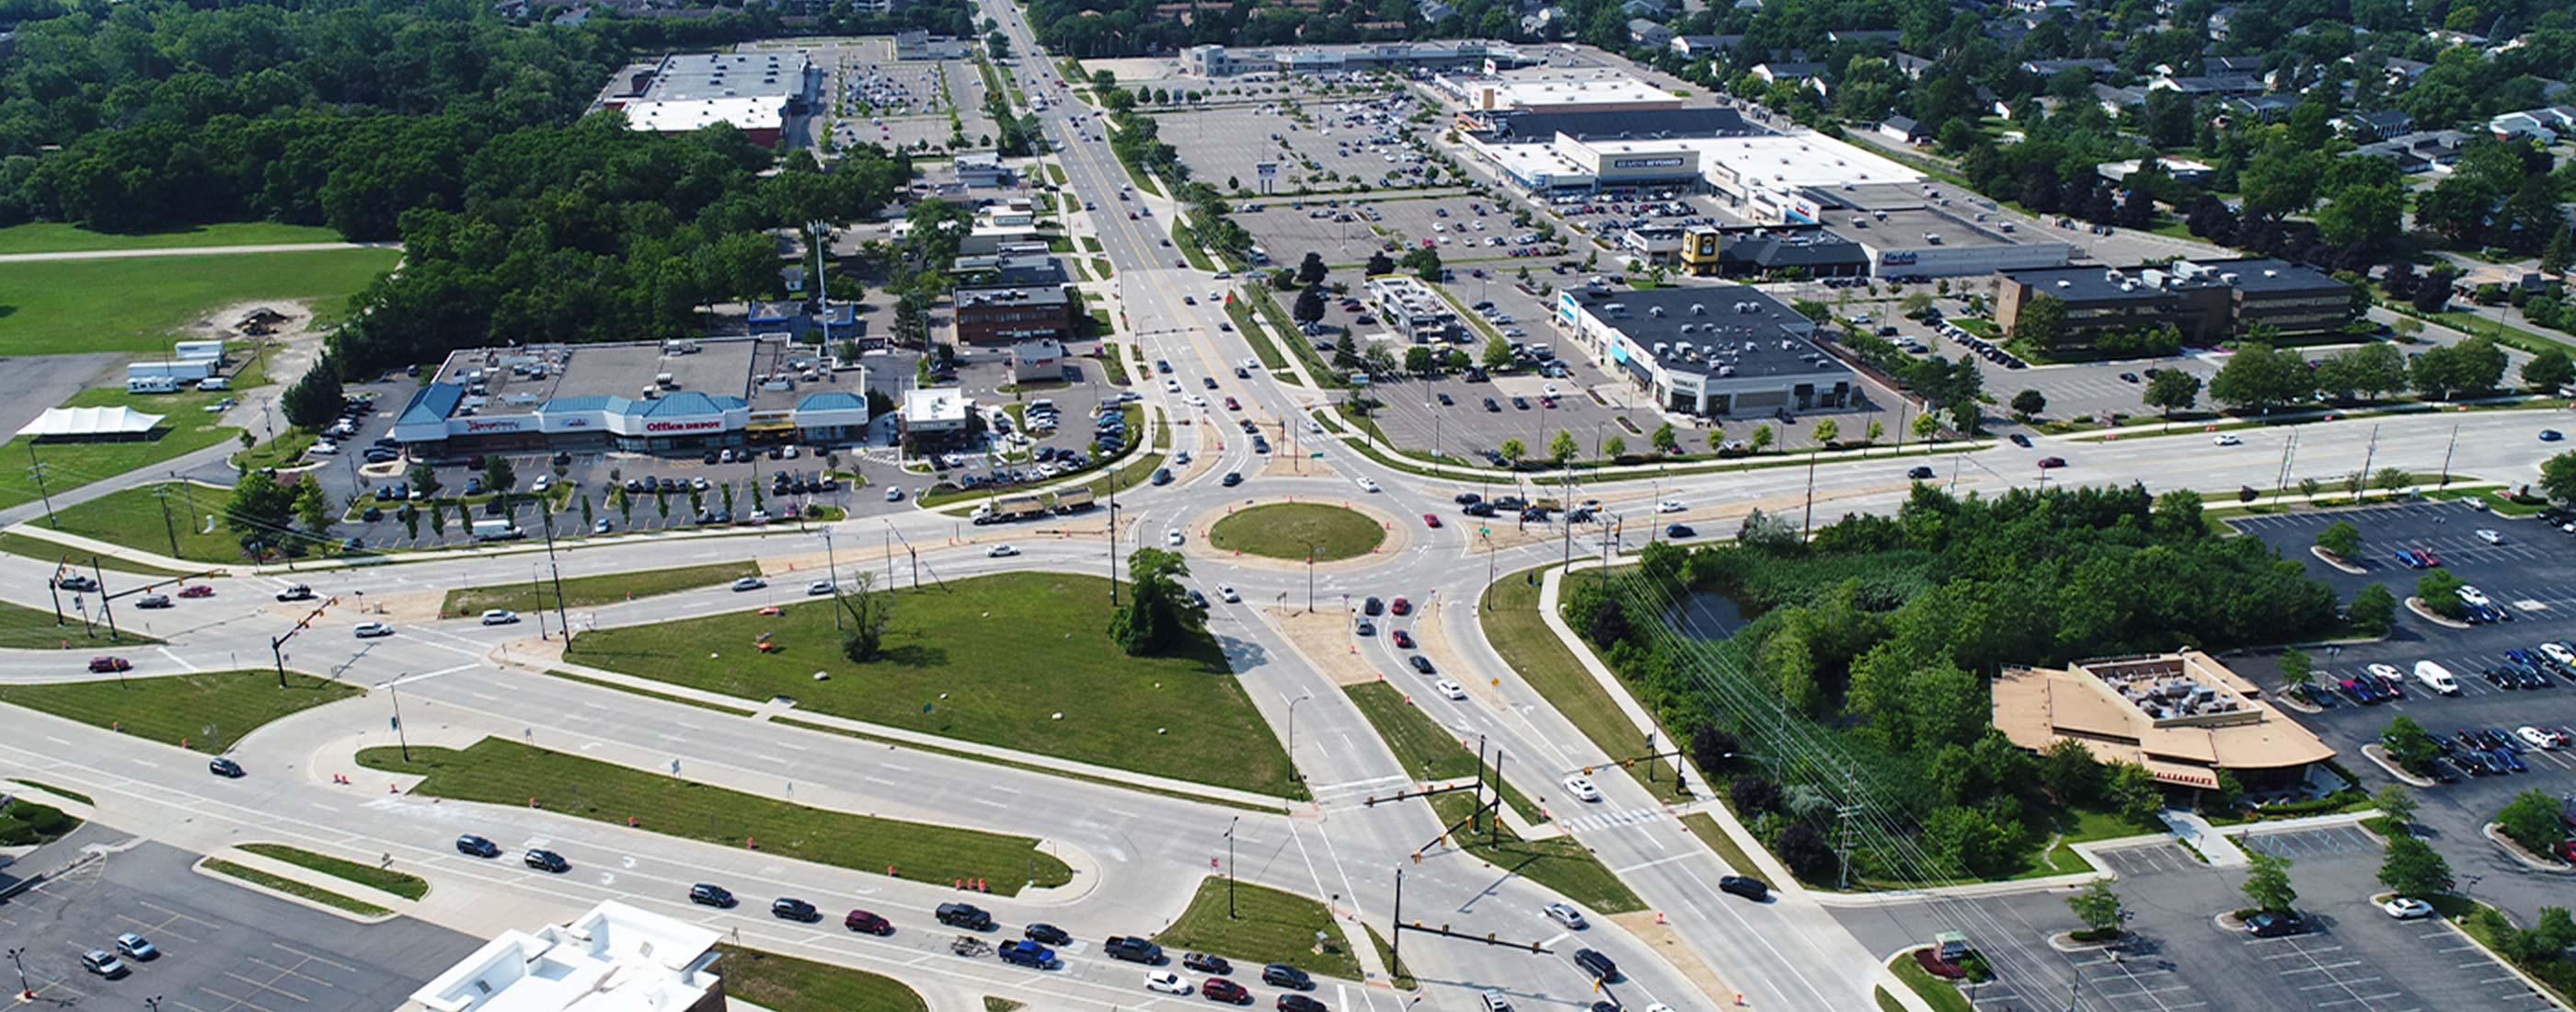 The Orchard Lake Boulevard included reconstruction from a 5-lane road to a 4-lane boulevard.